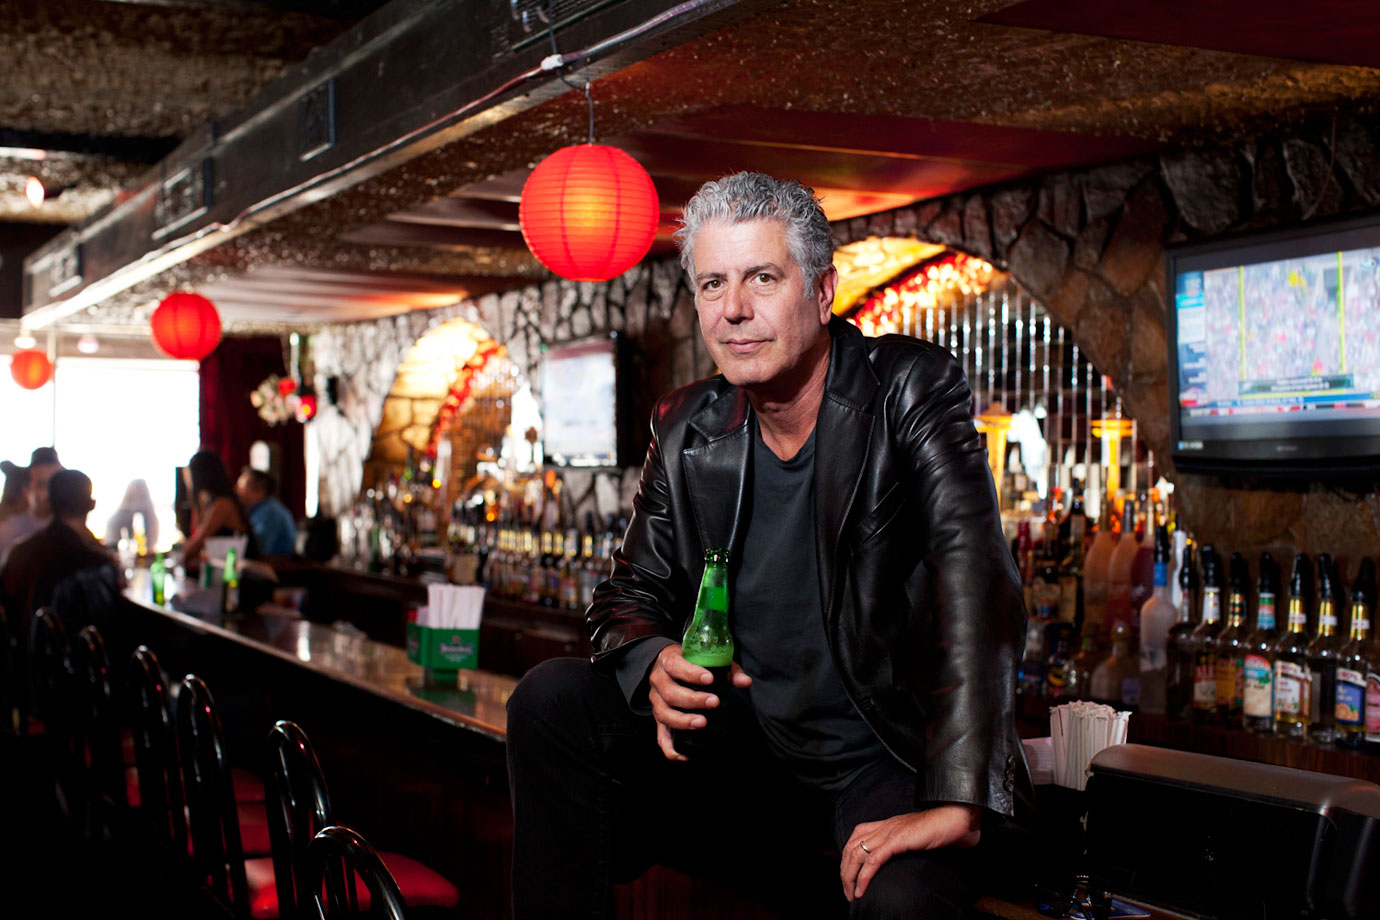 Anthony Bourdain on Writing, Hangovers, and Finding a Calling